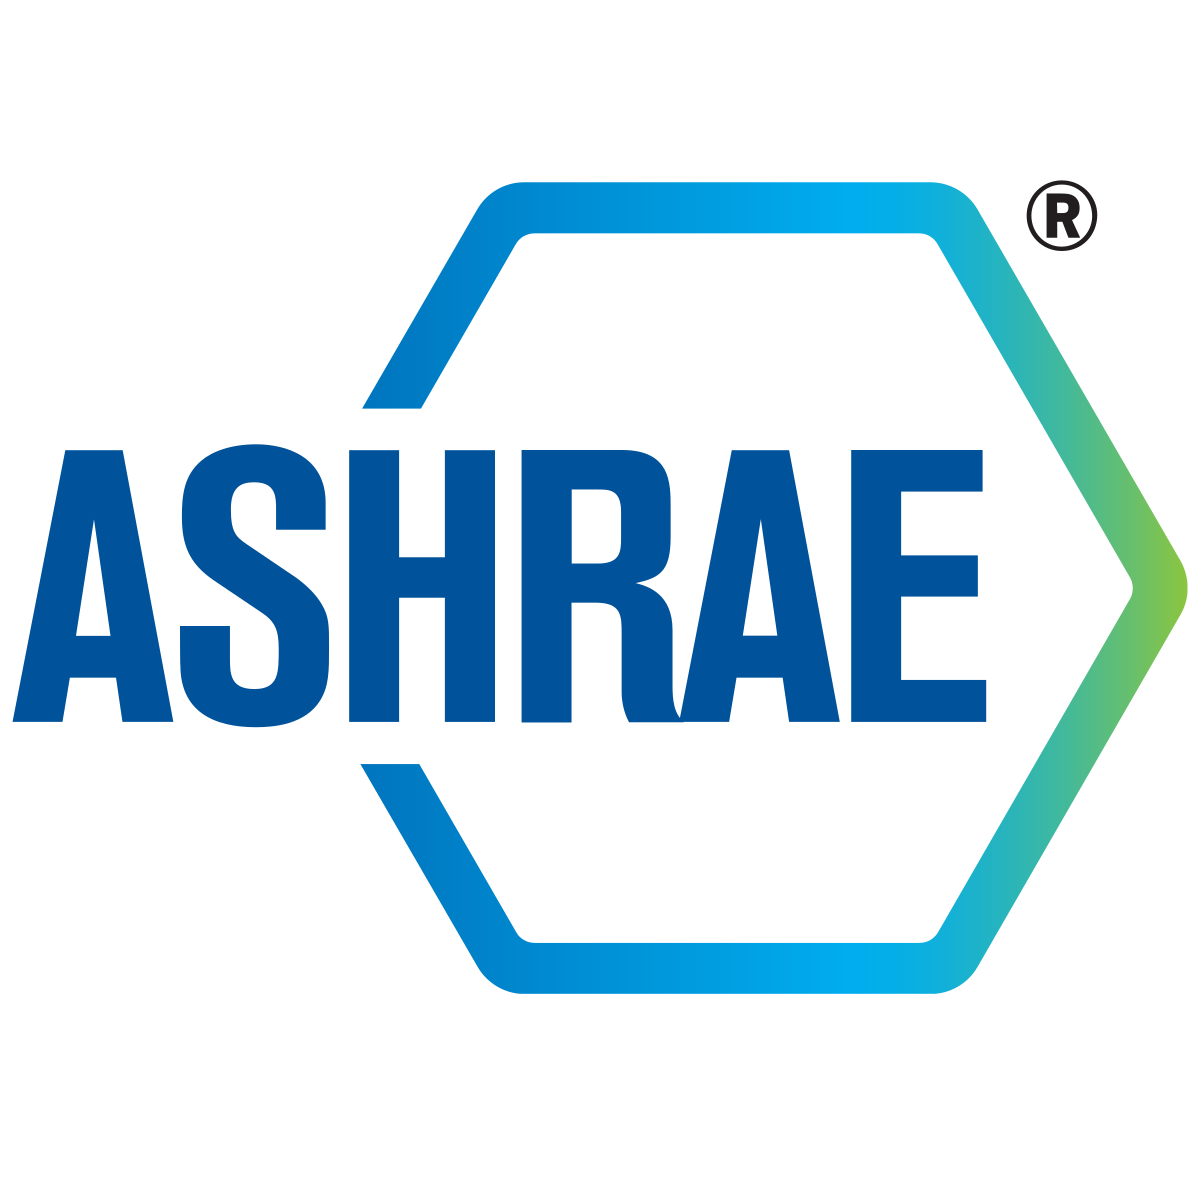 American Society of Heating, Refrigerating and Air Conditioning Engineers (ASHRAE)